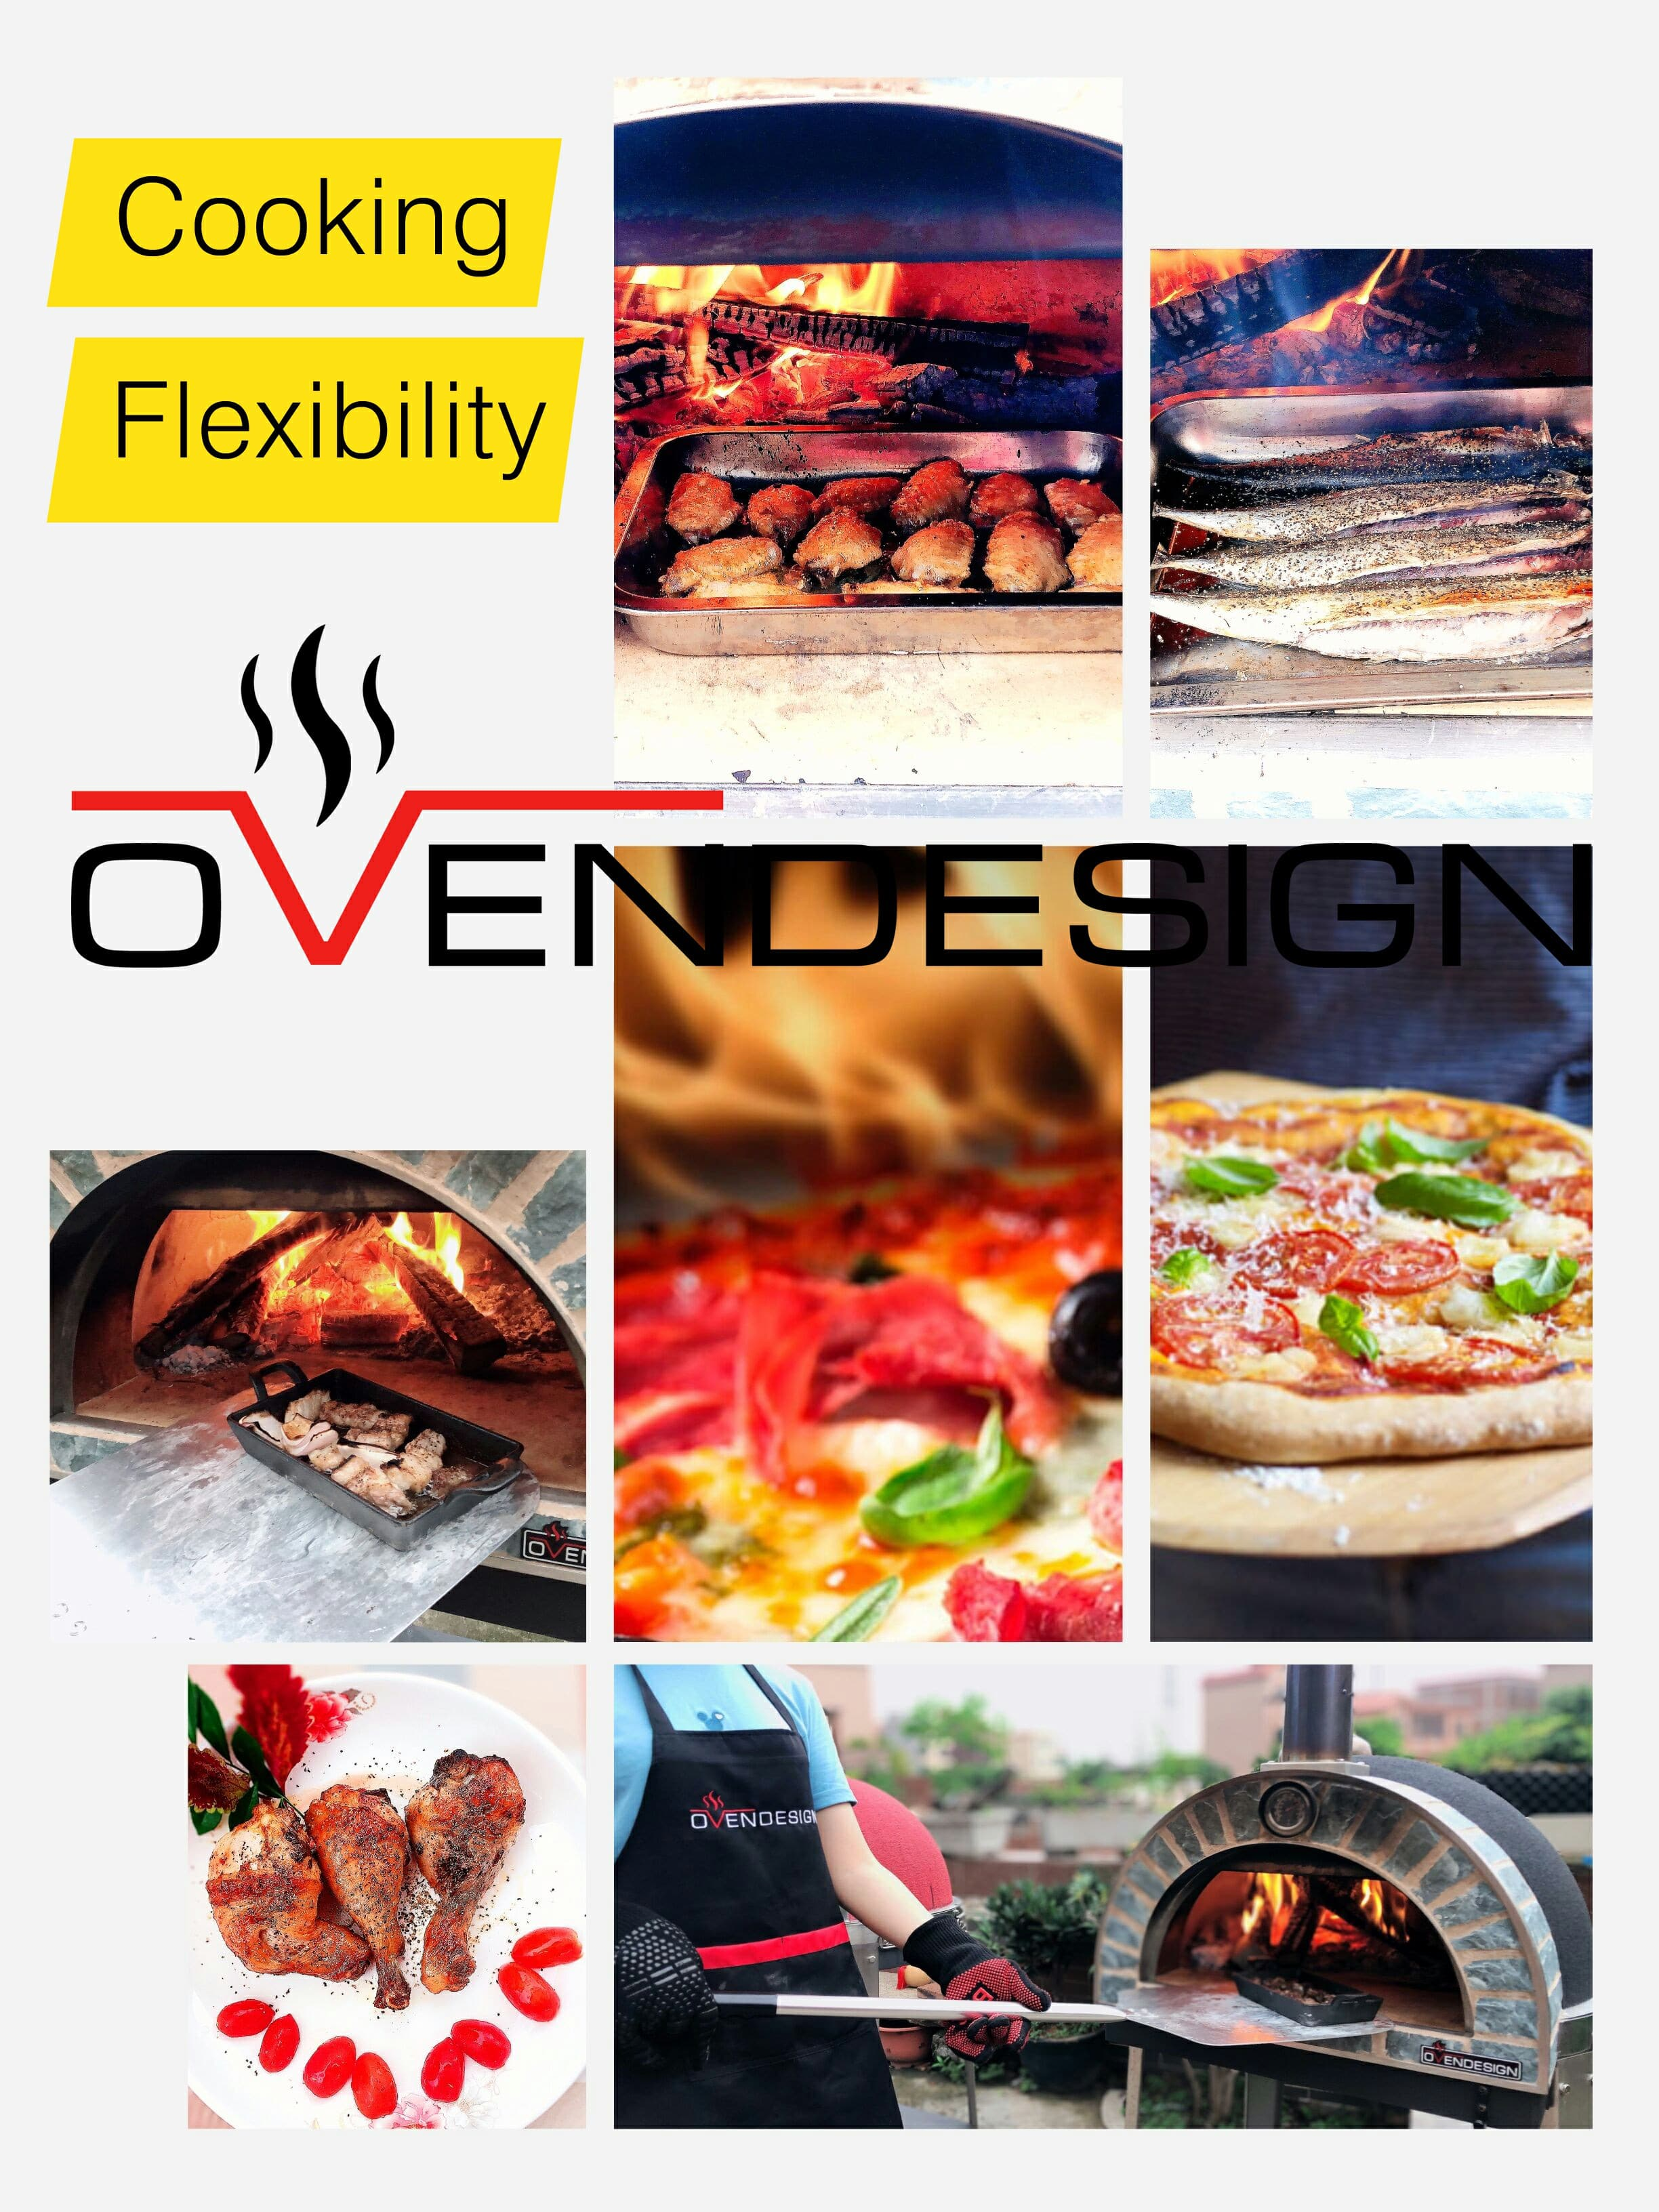 Cooking Flexibility